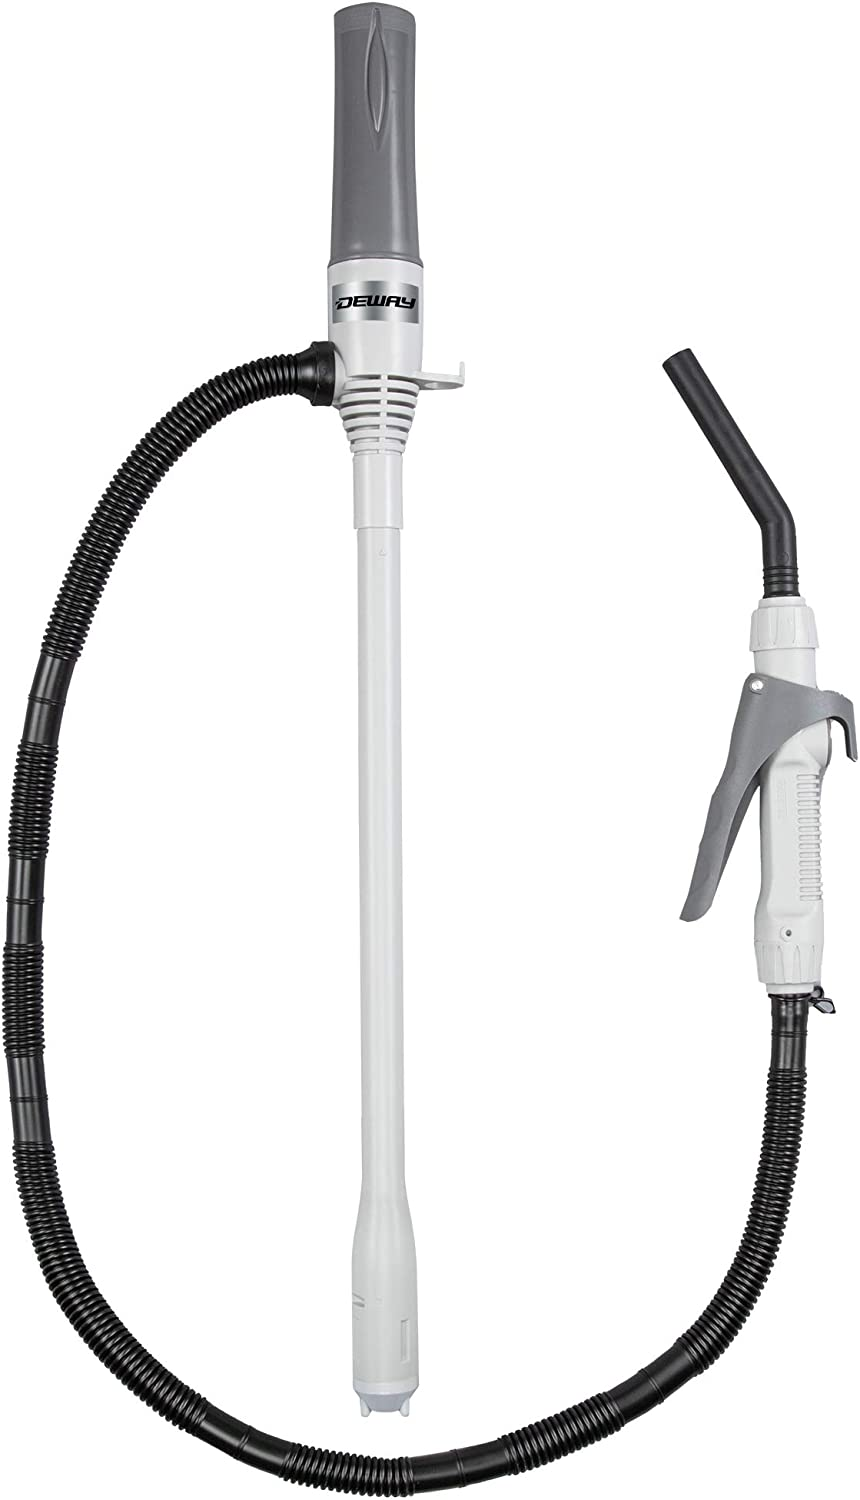 DEWAY Liquid Transfer Pump with Nozzle for Quick Flow Control & Stop, 3X More Powerful D Battery Powered, Portable Fuel Pump with Leak Protection, Flexible Long Hose, Transfers at 2.3 Gal/Minute